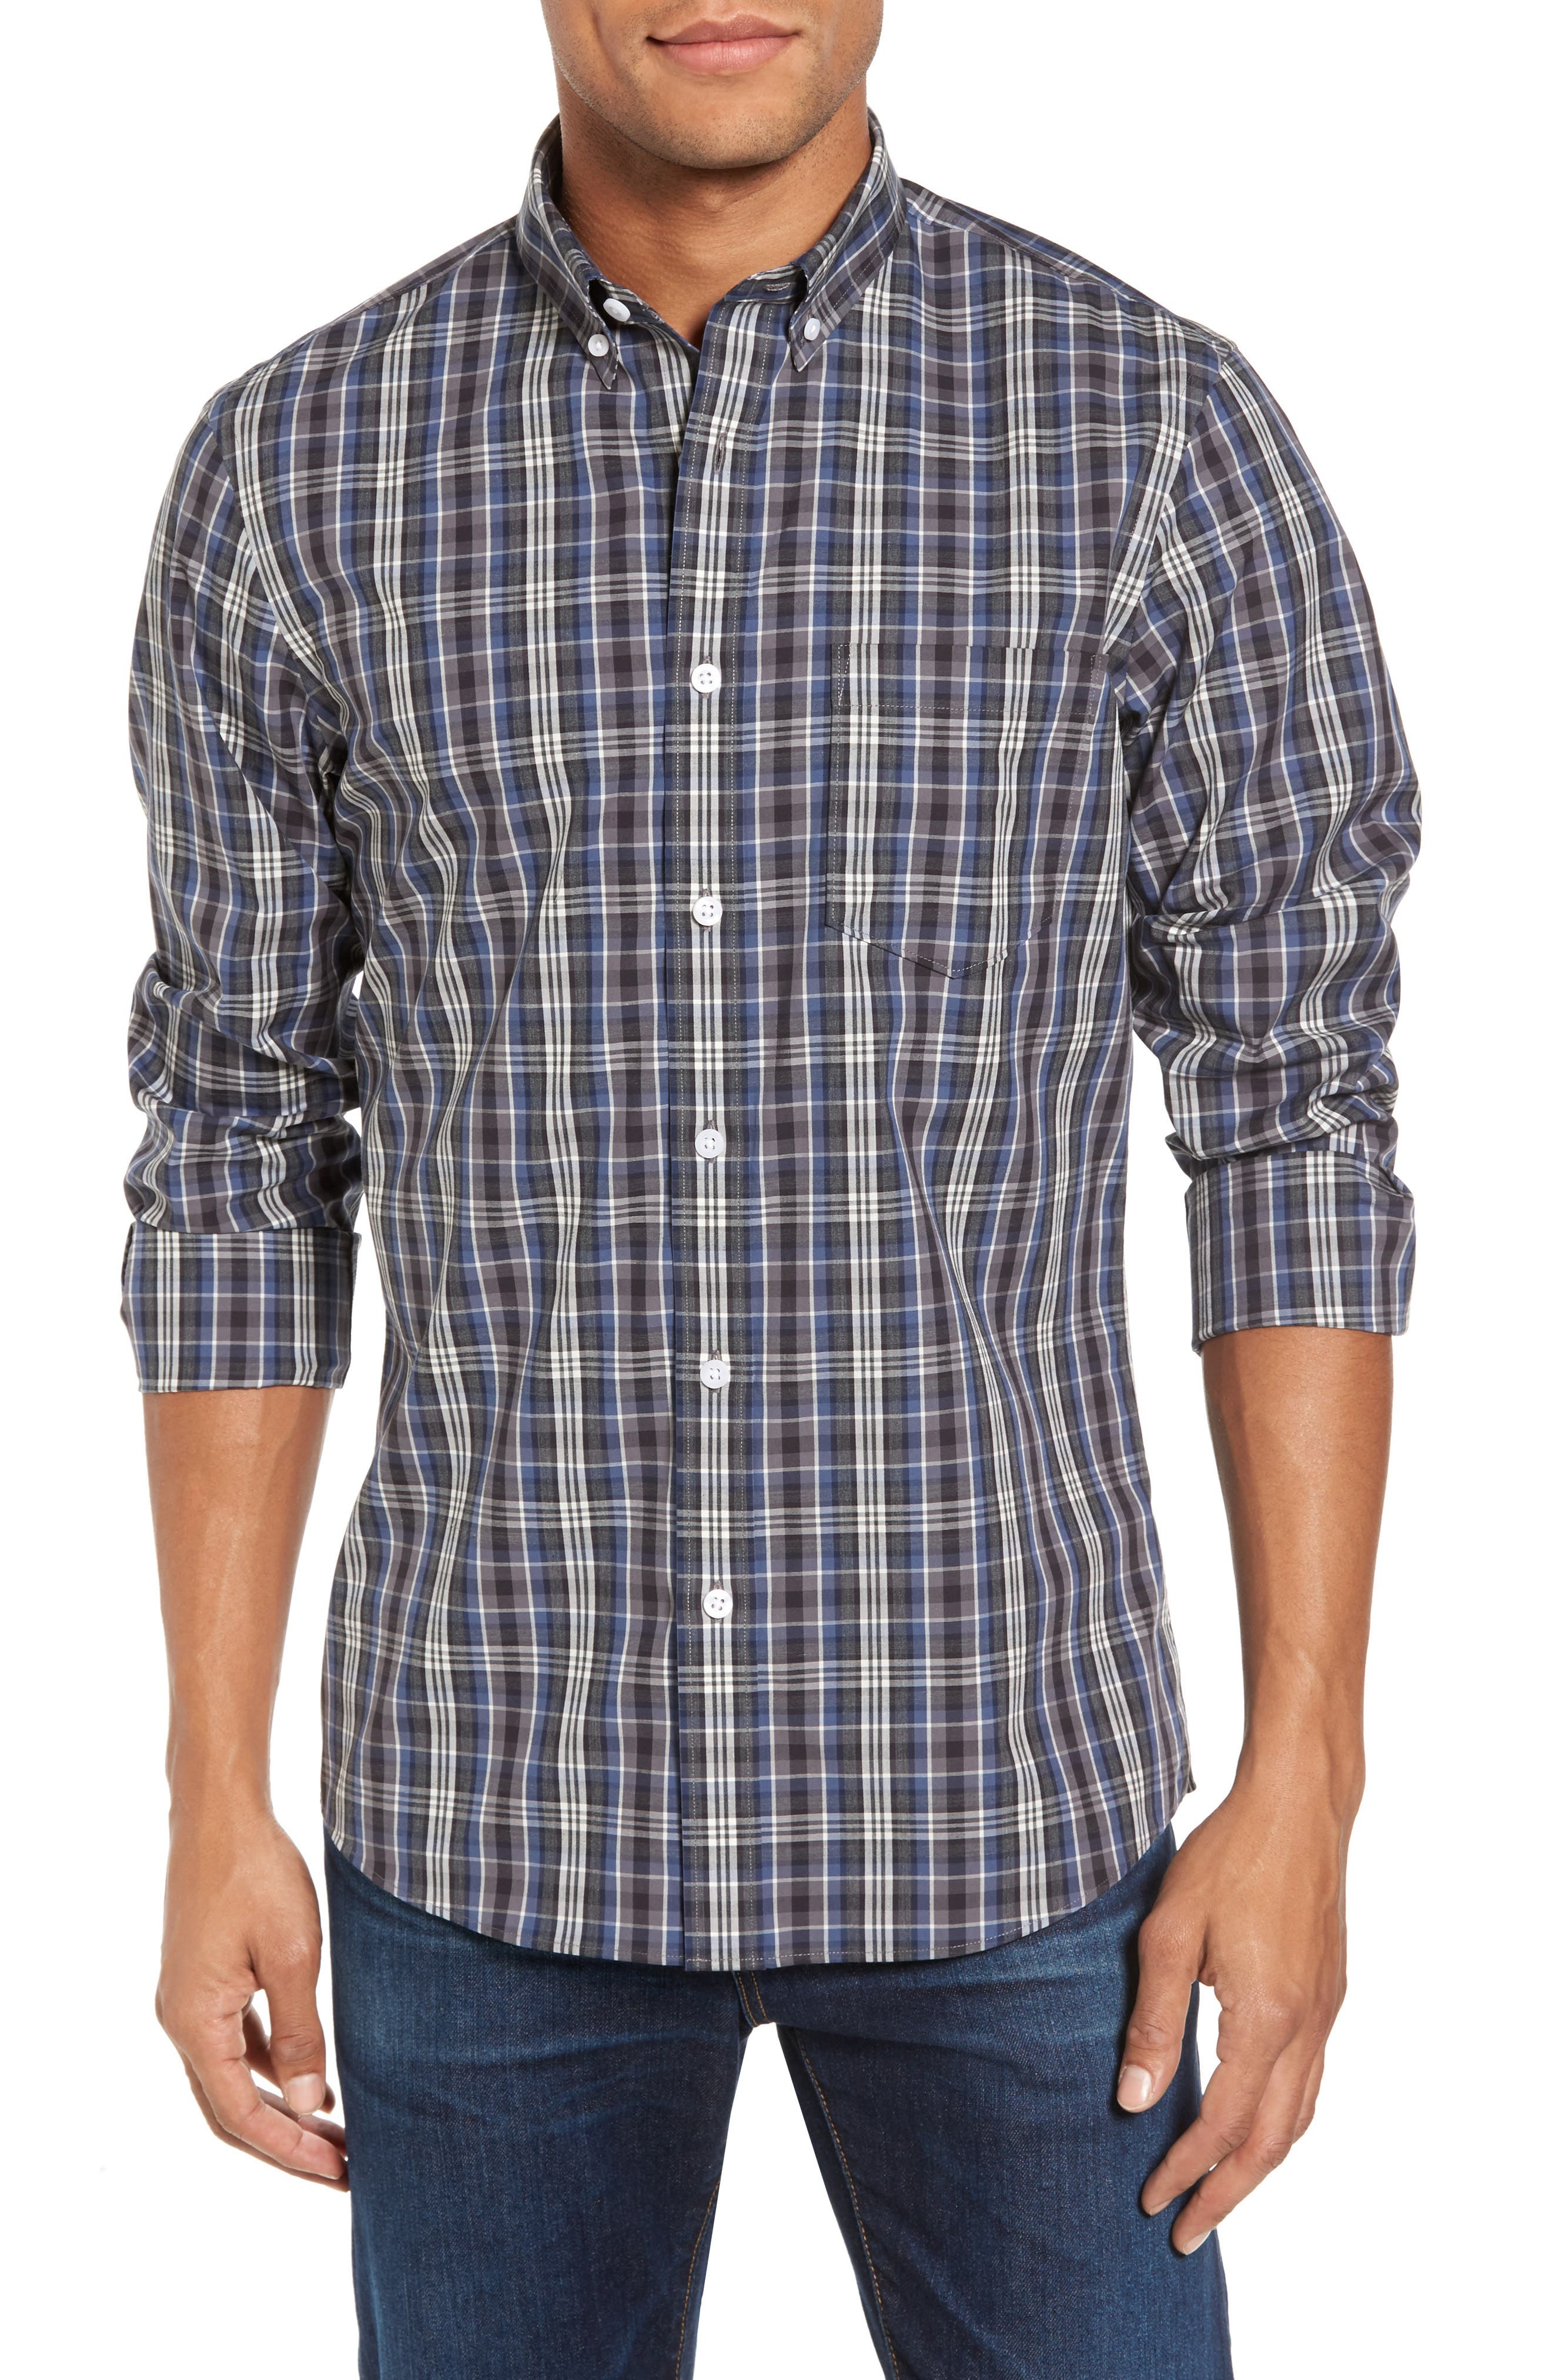 Nordstrom Men's Shop Non-Iron Trim Fit Check Sport Shirt